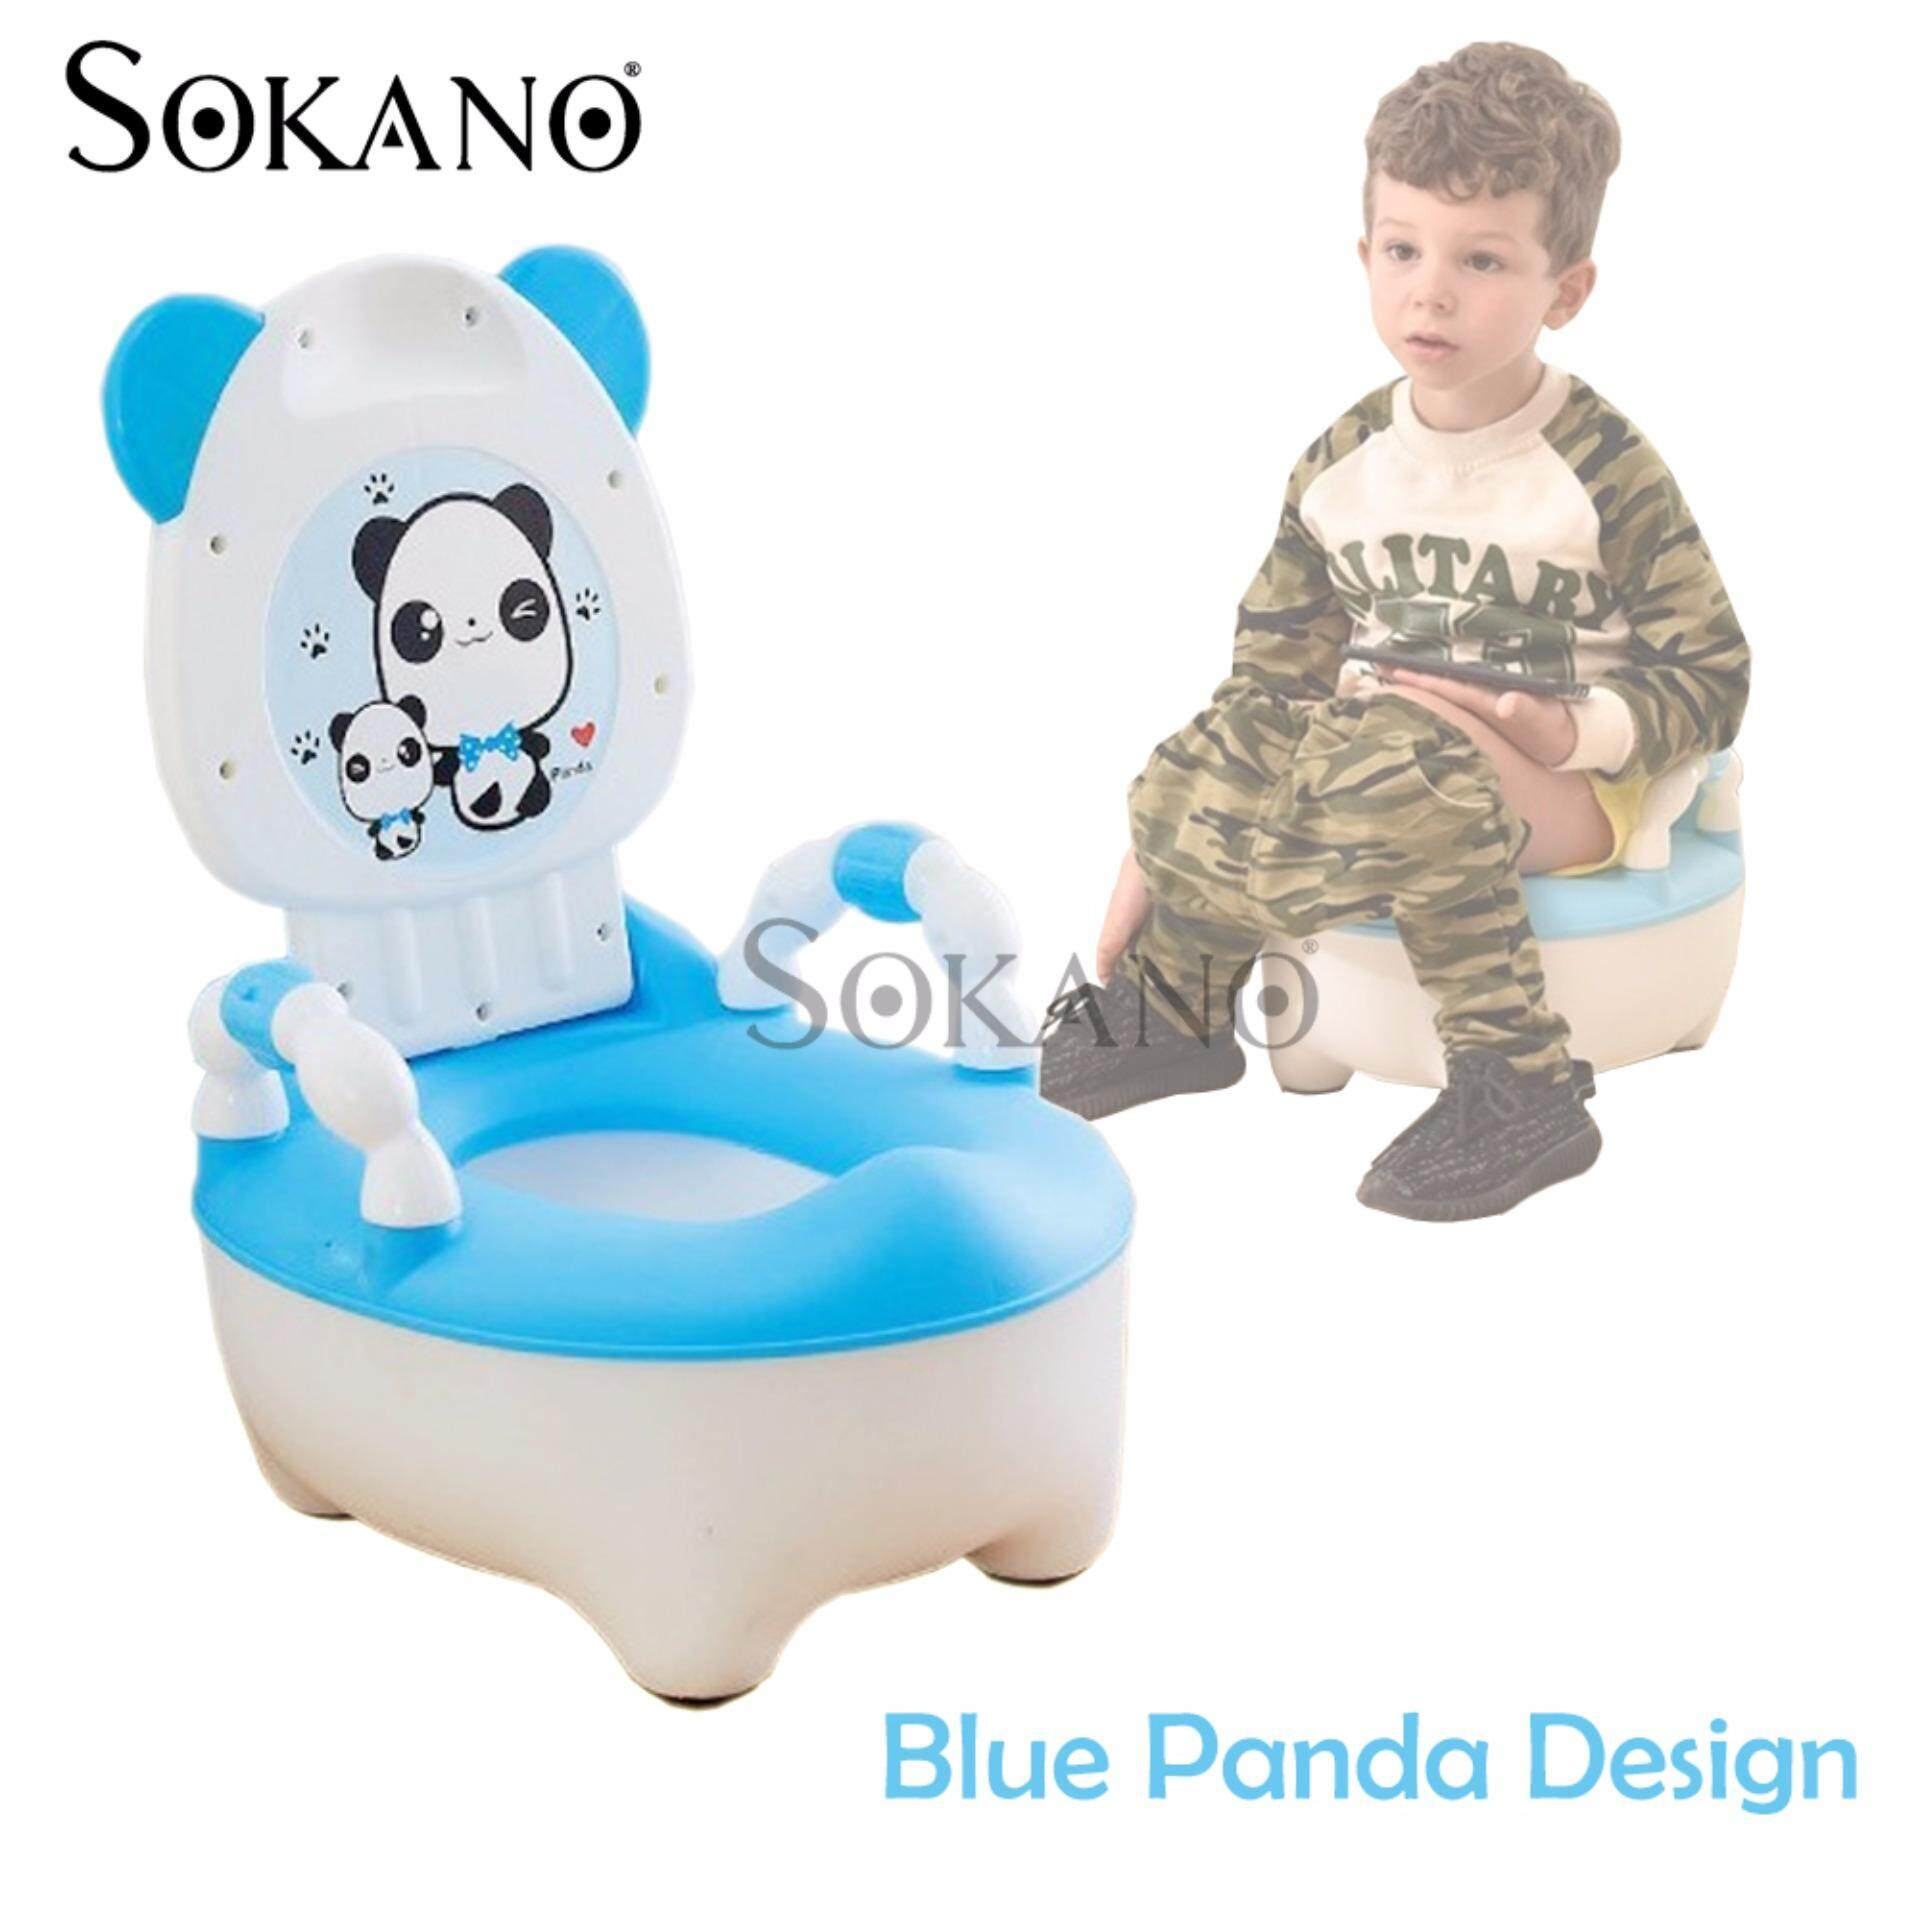 SOKANO Panda Design Kids Toilet Training Potty and Seats for Girls and Boys - Blue